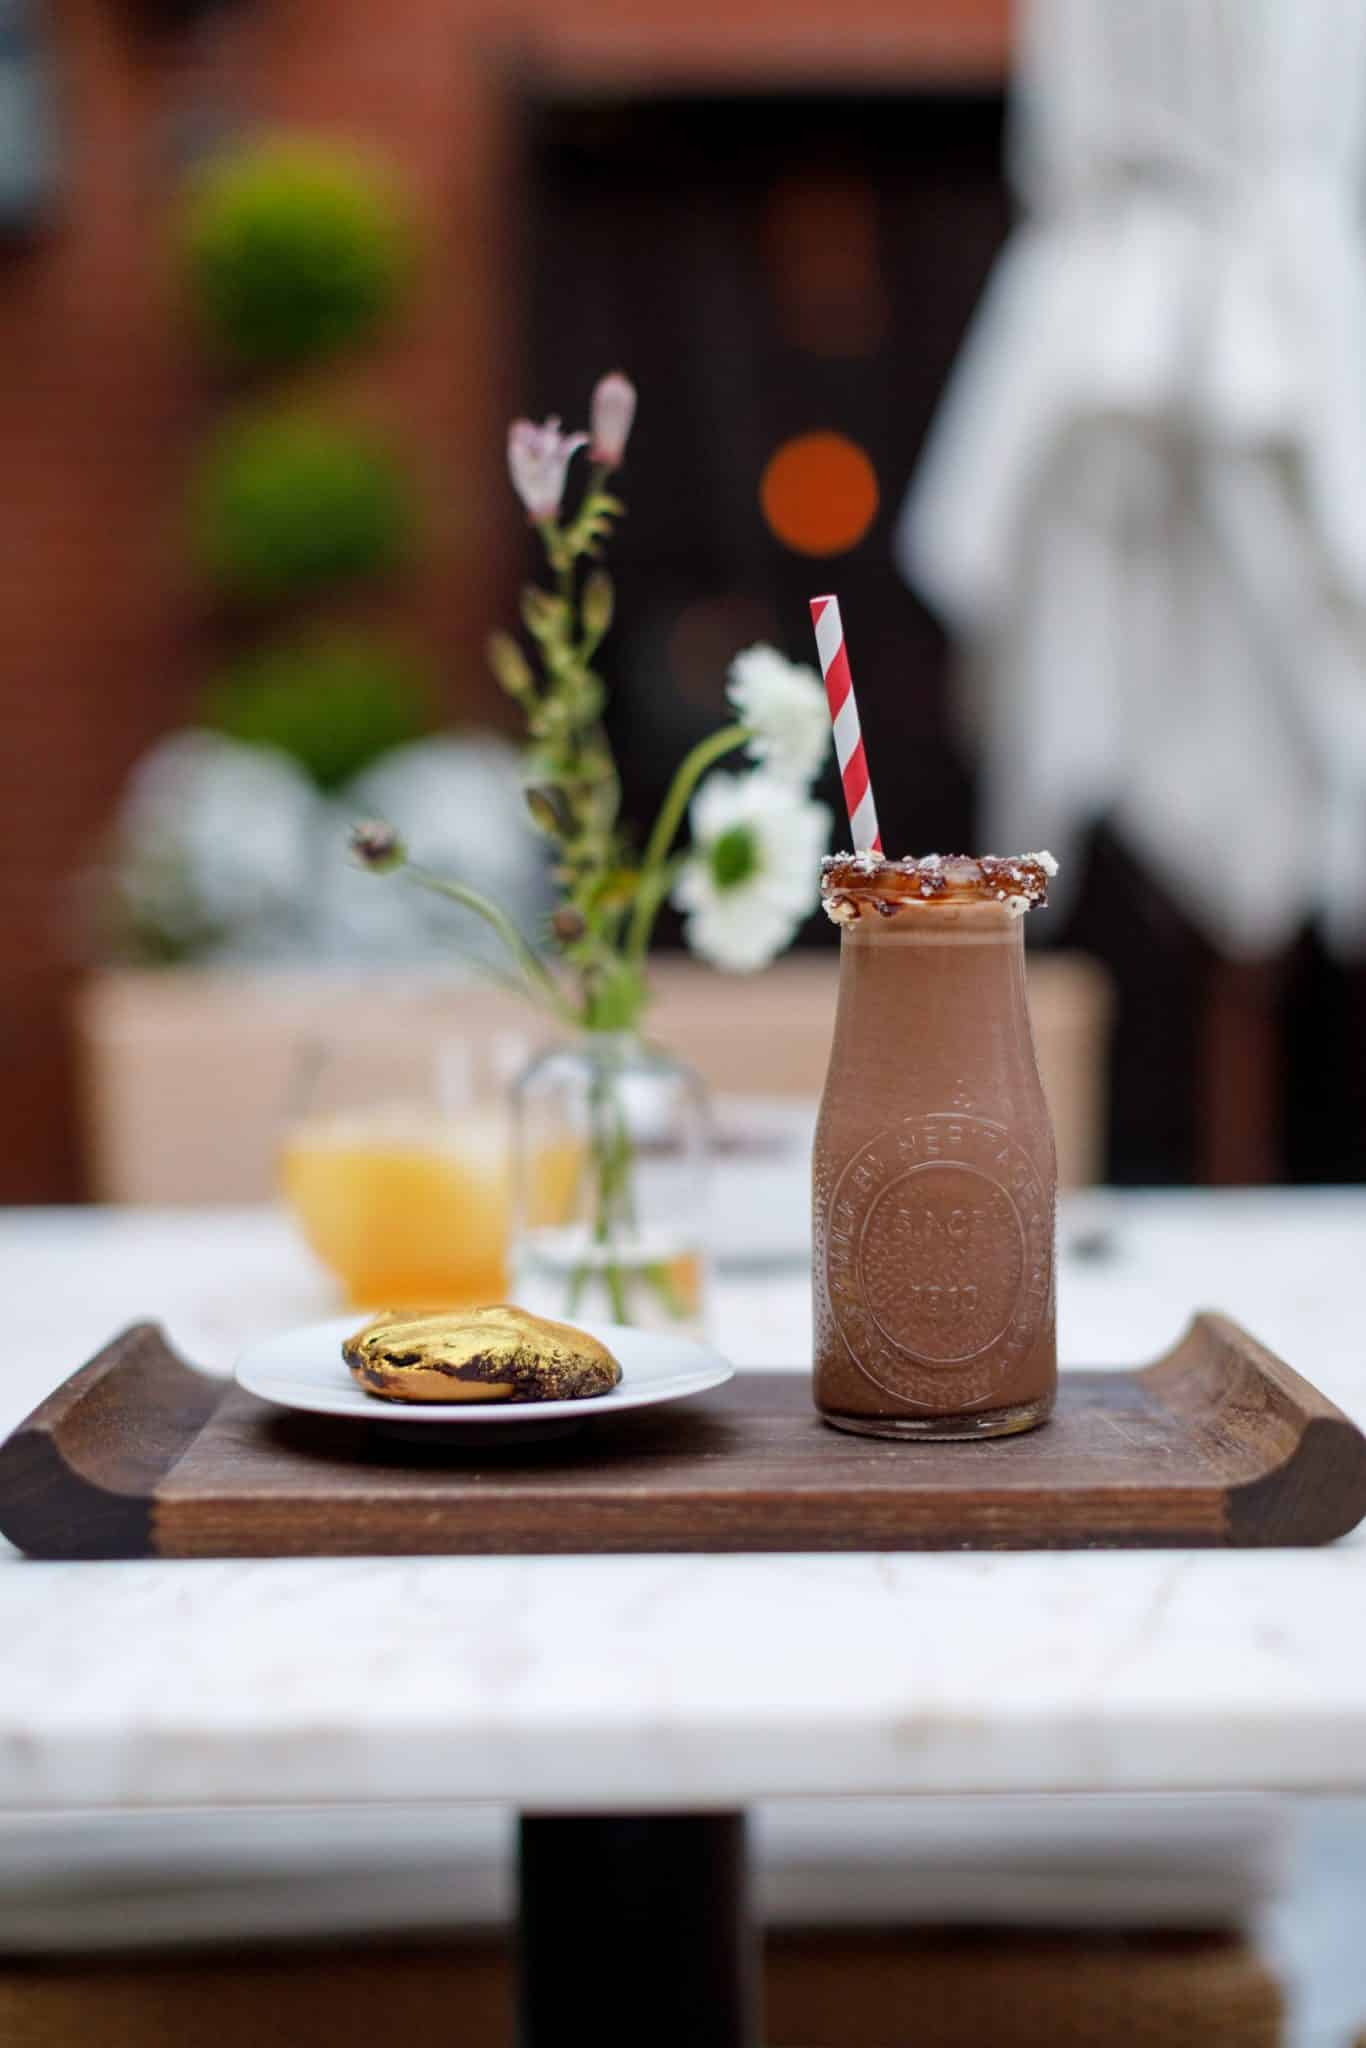 A dessert drink and side